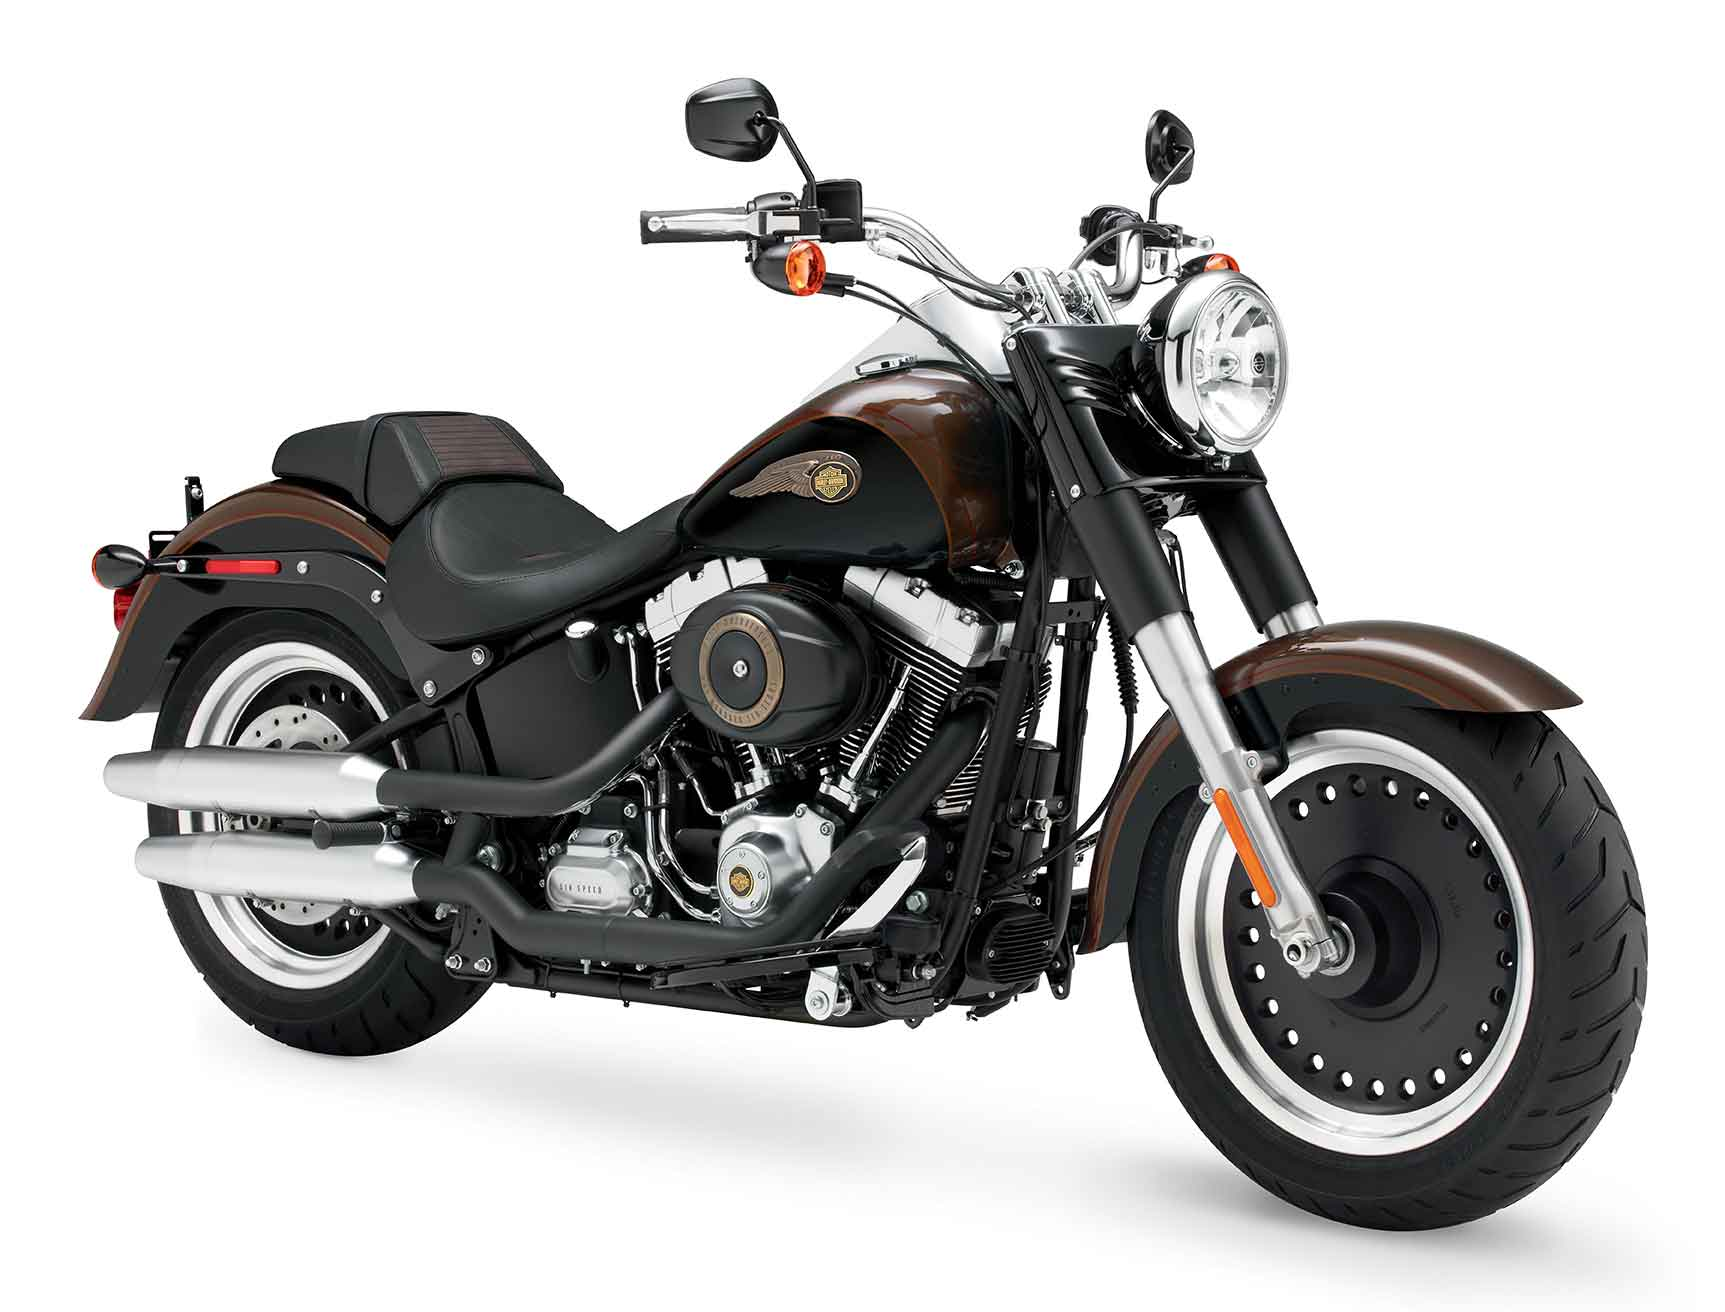 2013 harley davidson fat boy lo 110th anniversary moto zombdrive com. Black Bedroom Furniture Sets. Home Design Ideas